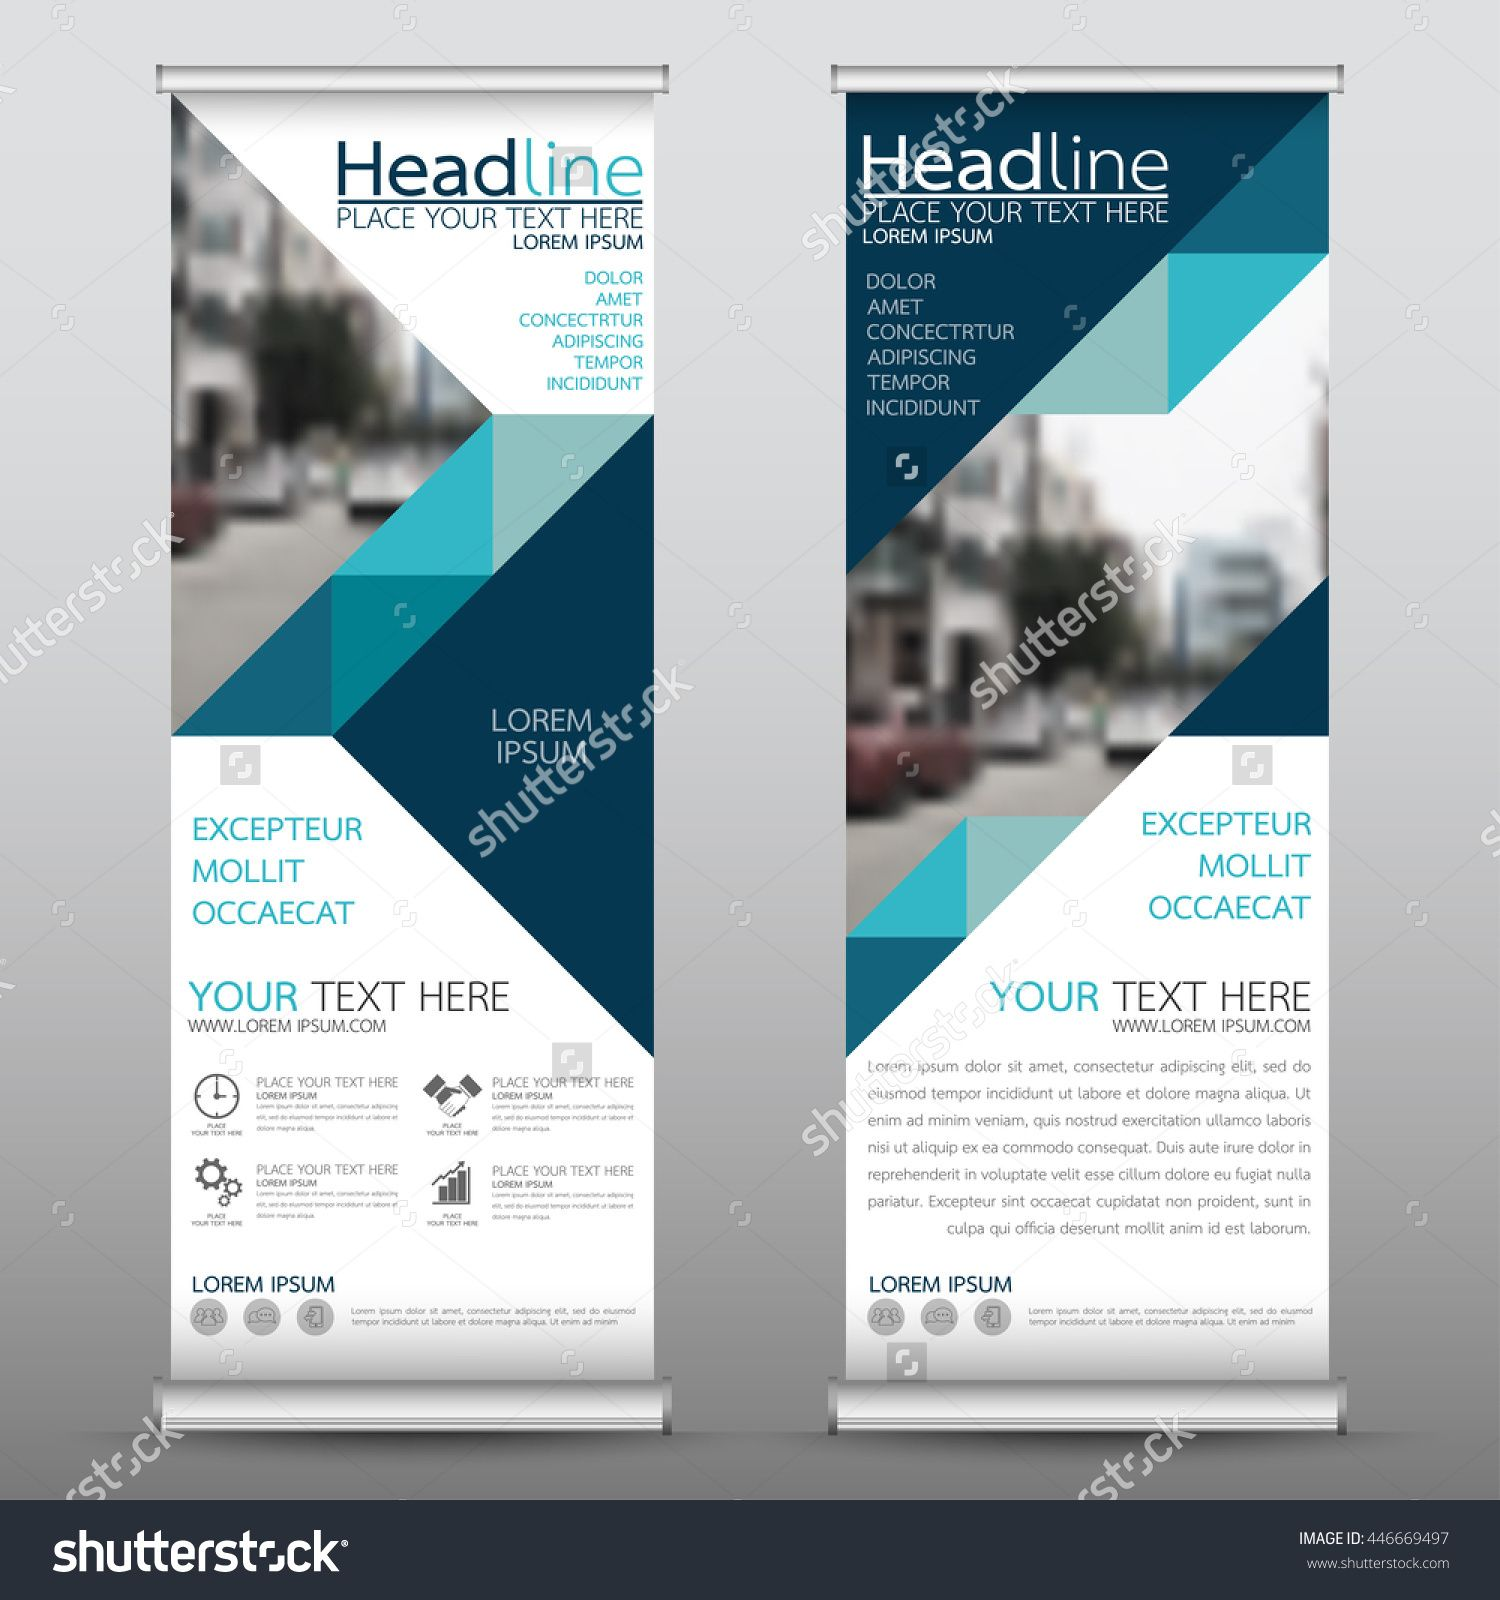 Banner Design Ideas ms de un milln de vectores gratis psd fotos e iconos gratis todos memphis designbanner ideasshop Blue Roll Up Business Brochure Flyer Banner Design Vertical Template Vector Cover Presentation Abstract Geometric